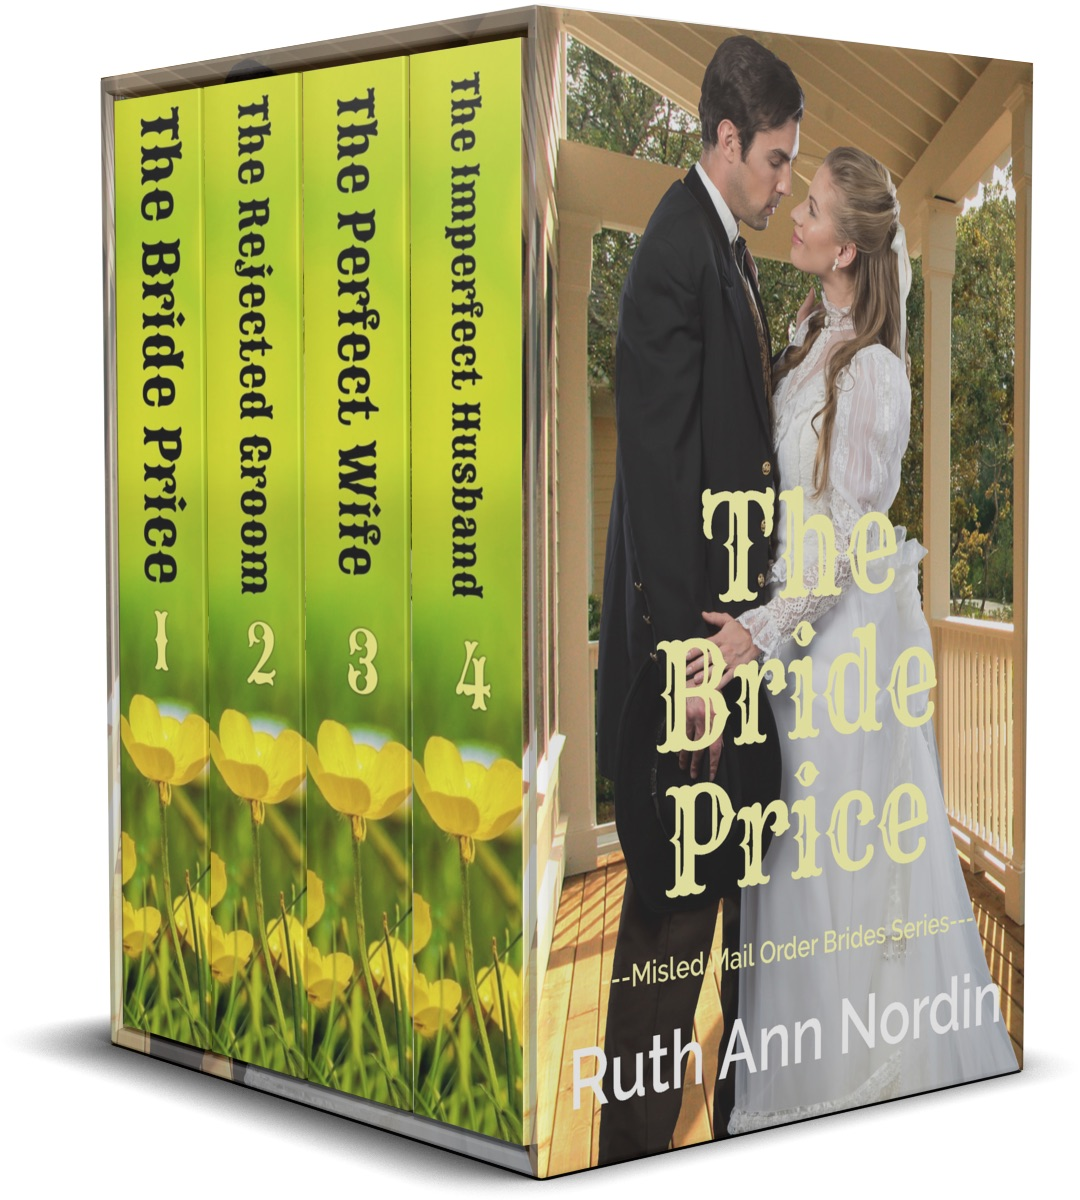 Misled Mail Order Brides Series Boxed Set 3D Cover